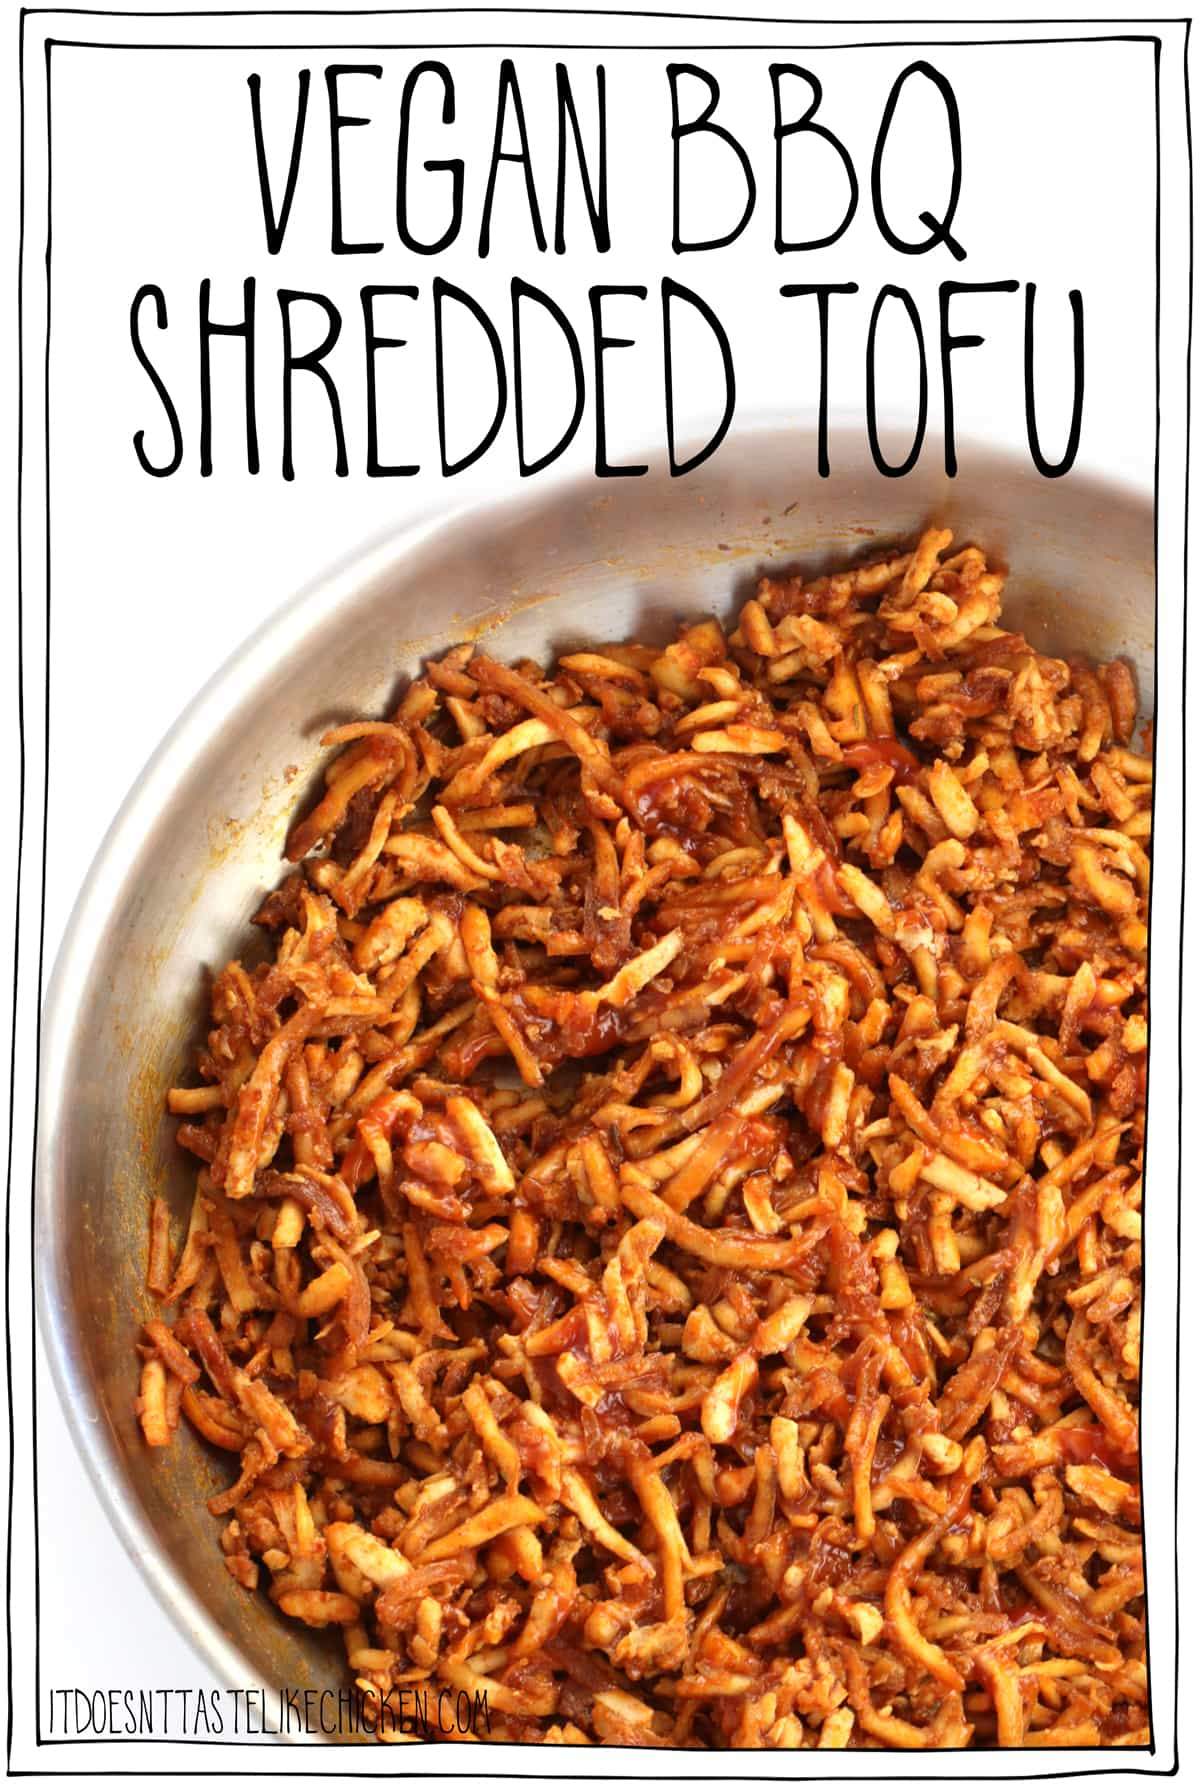 Vegan BBQ Shredded Tofu! (Vegan shredded chicken). Just 8 ingredients and super easy to make. Use it any way you like- pile it bun for a pulled tofu sandwich, layer in a taco or in a burrito, use it for lettuce wraps, top on a baked potato, scatter over nachos. Make-ahead and meal-prep friendly. Gluten-free and oil-free options. #itdoesnttastelikechicken #veganrecipes #tofu